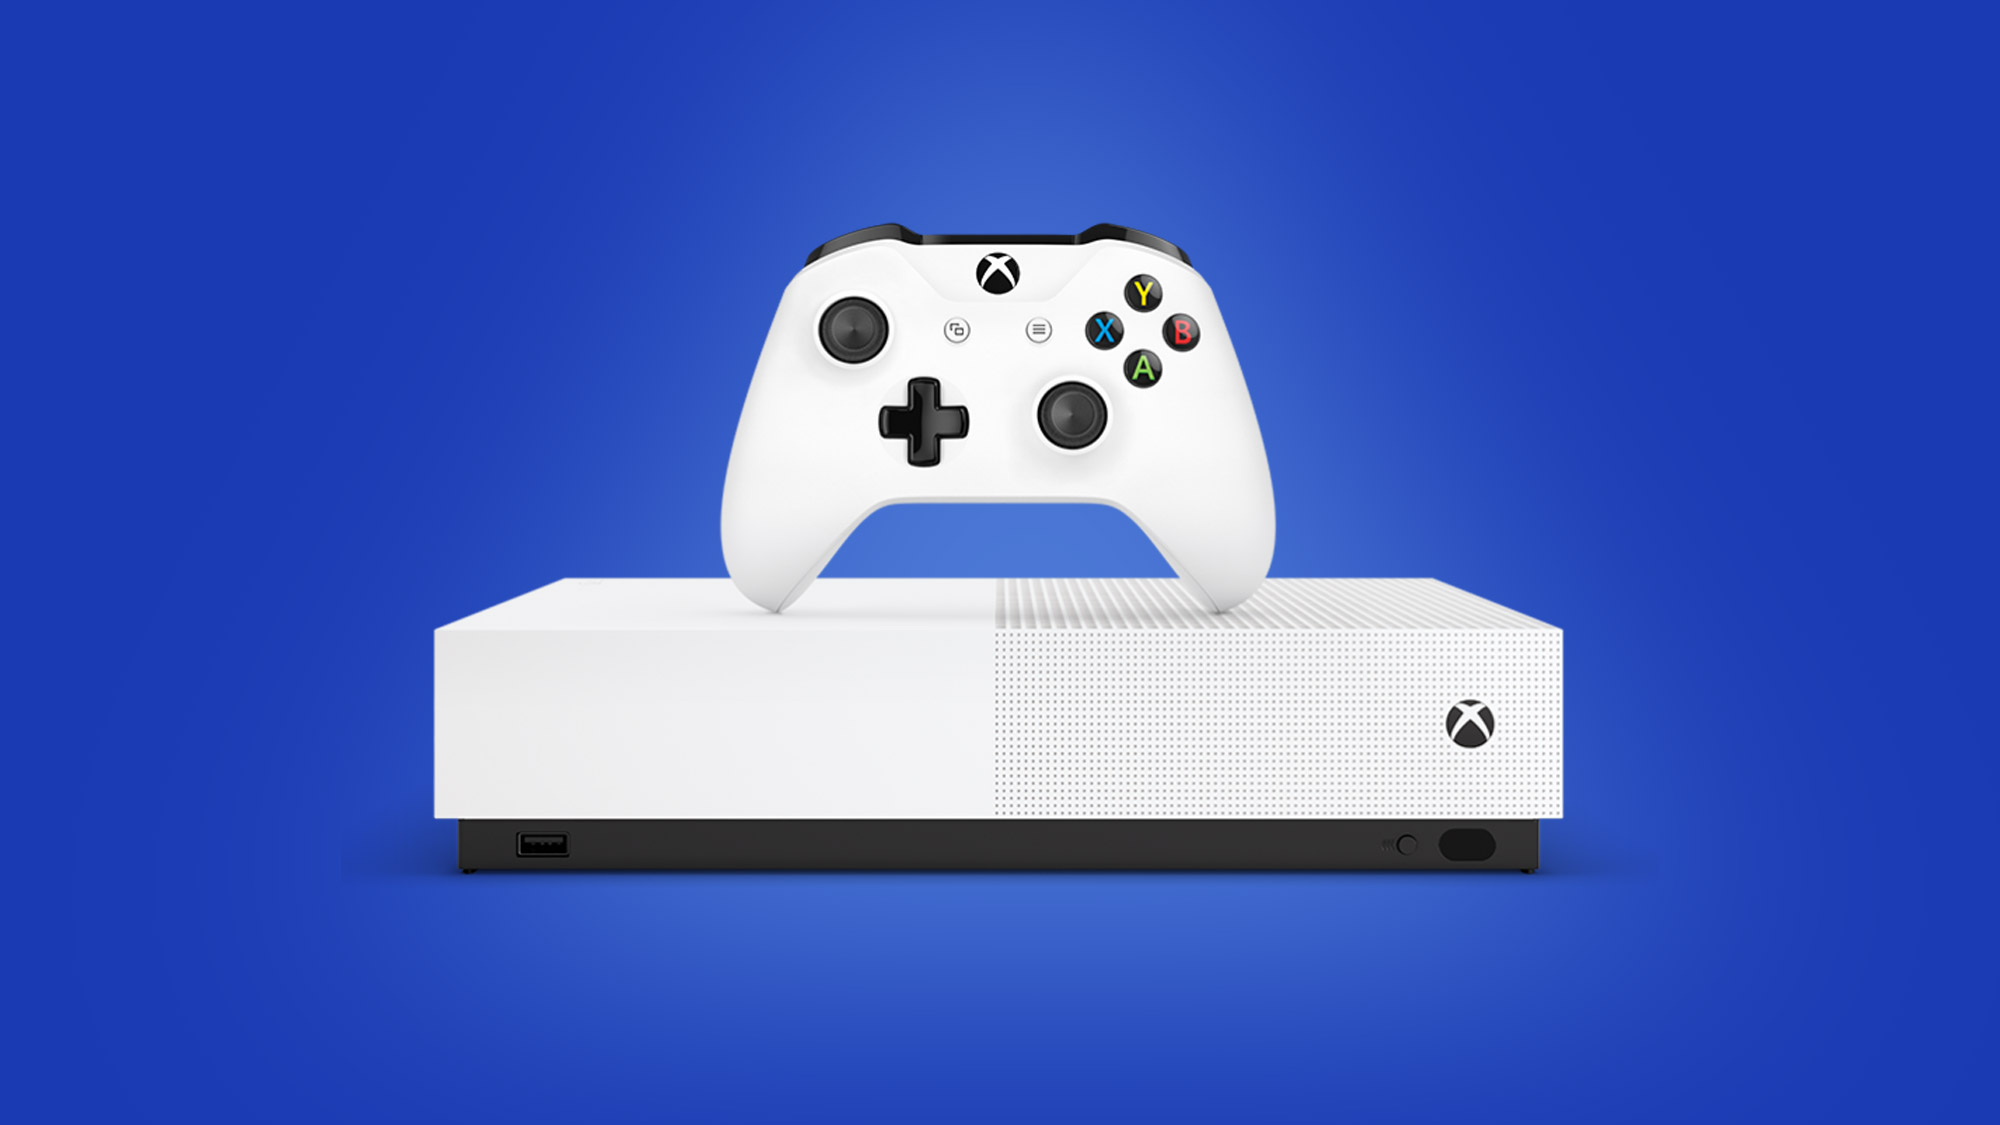 Walmart Drops The Price Of Xbox One S Ahead Of Black Friday